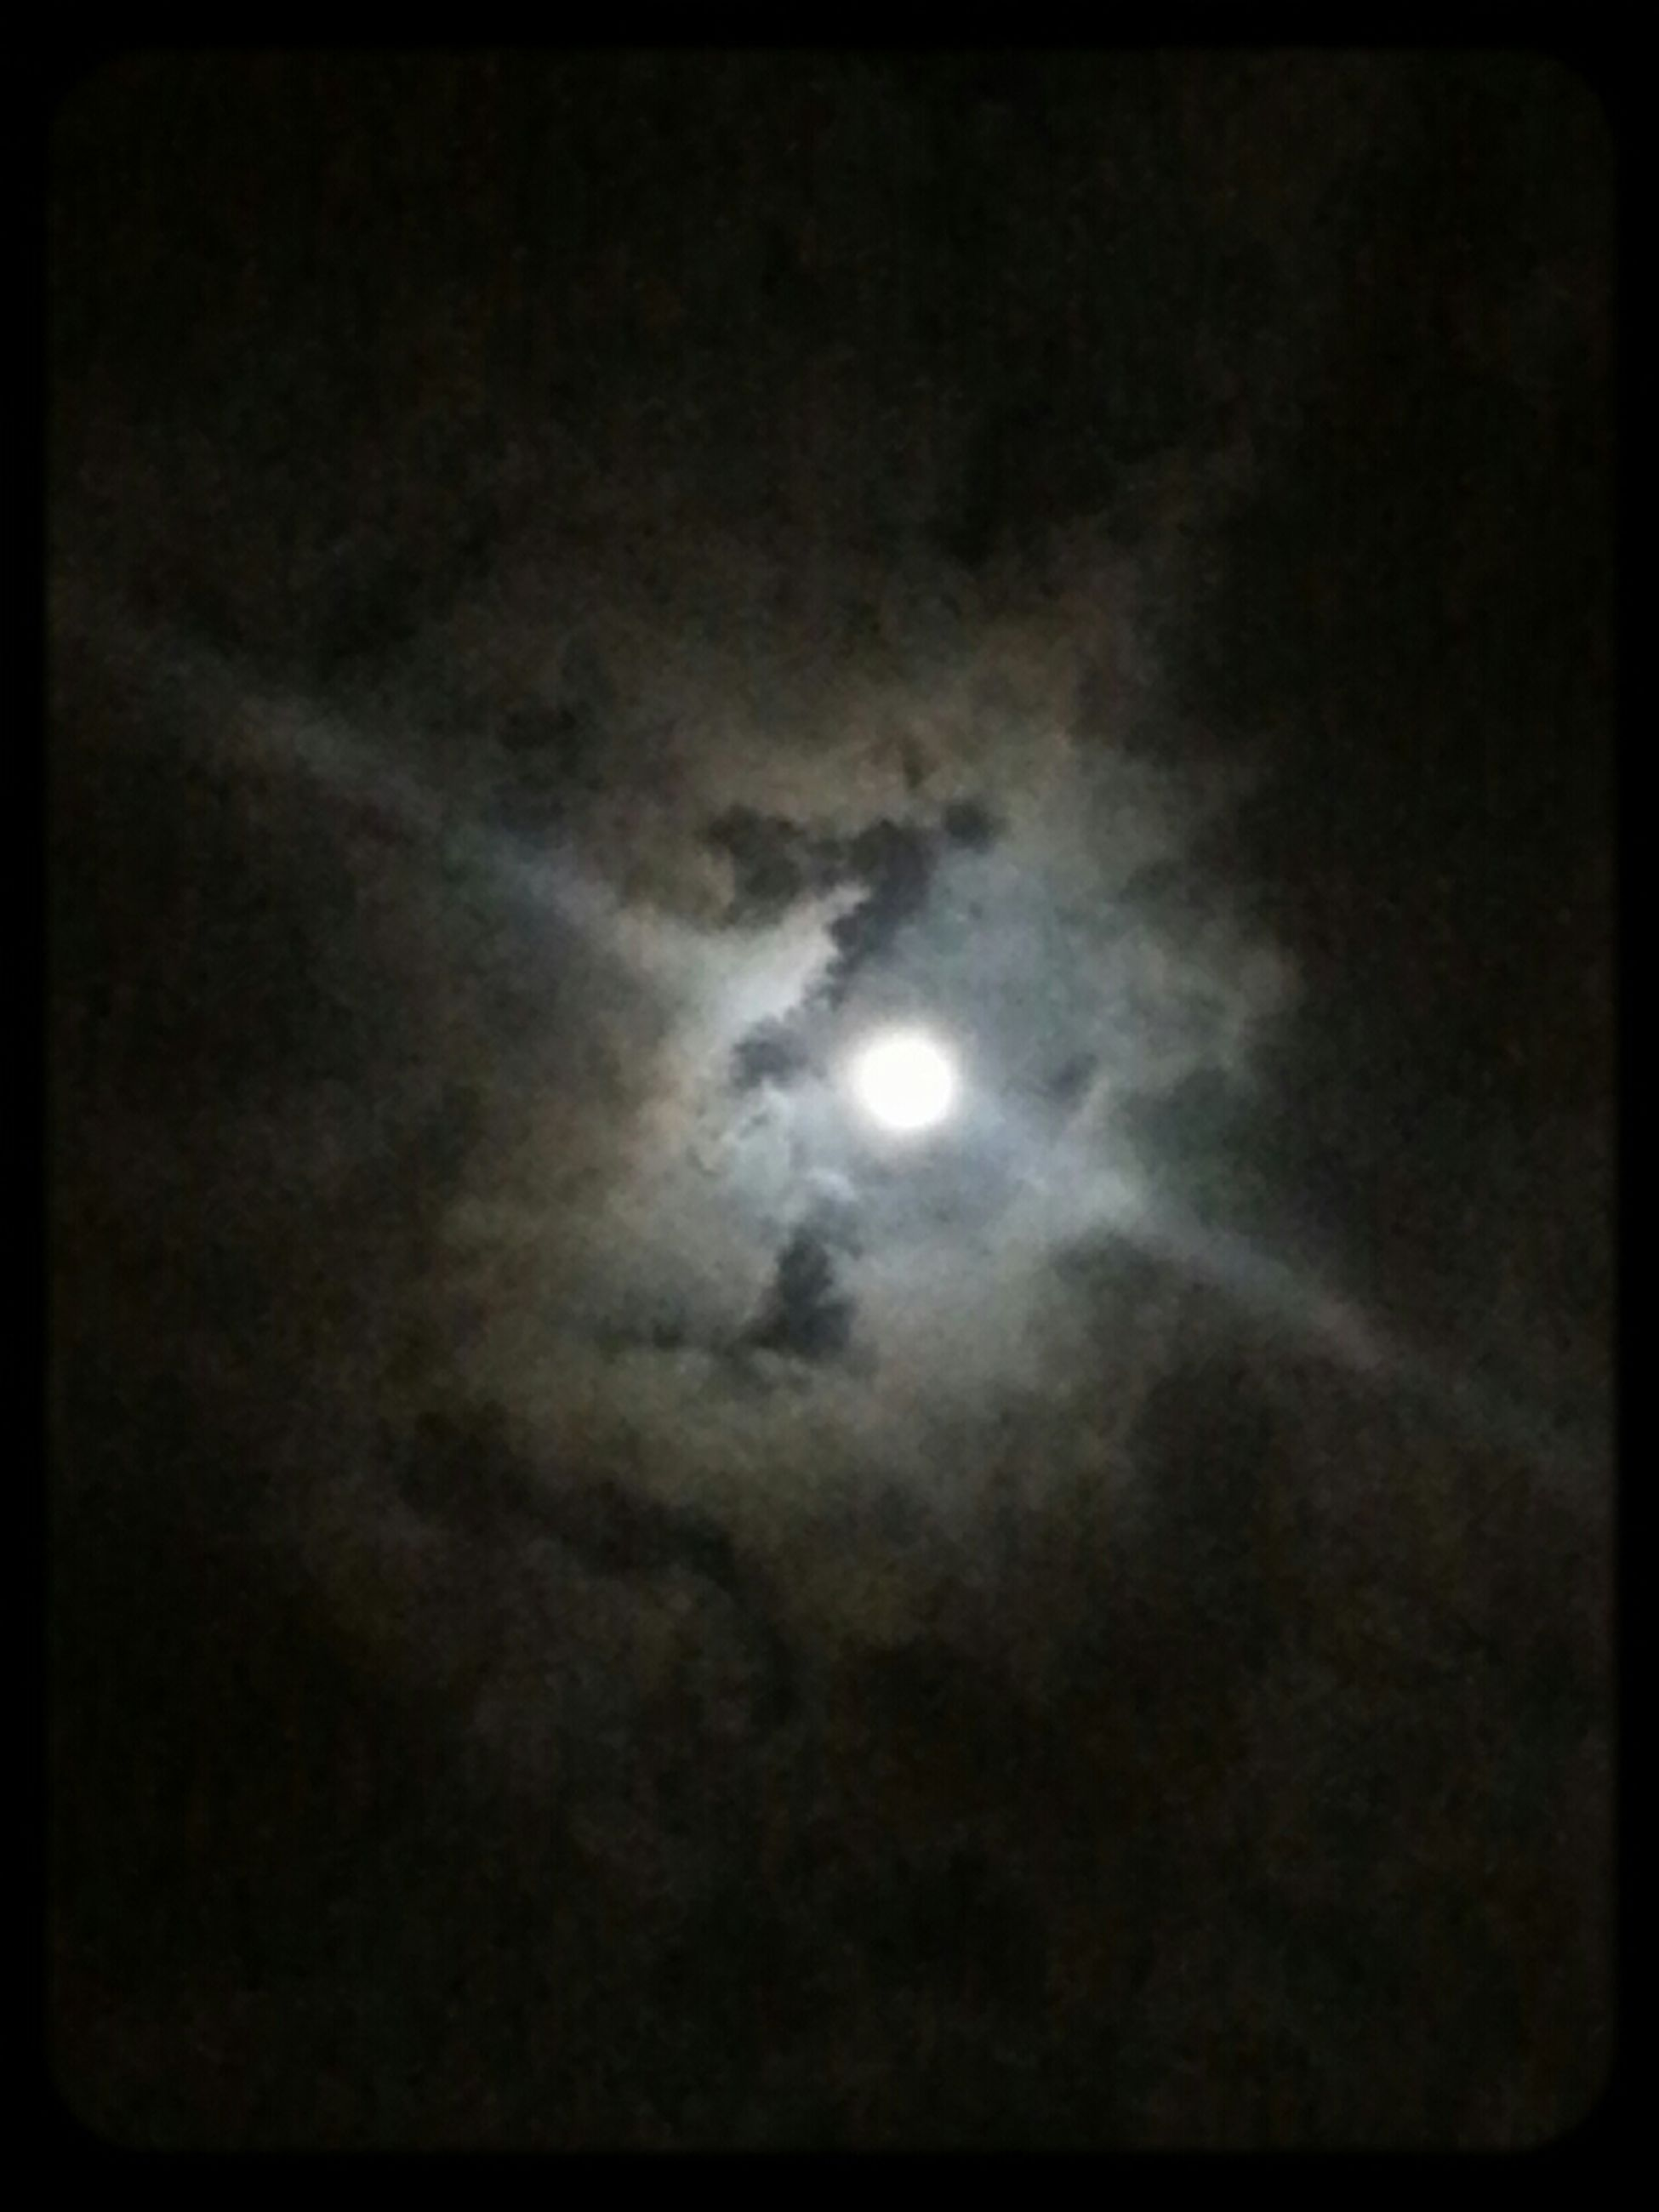 night, low angle view, sky, moon, transfer print, beauty in nature, auto post production filter, dark, scenics, nature, tranquility, weather, sky only, astronomy, tranquil scene, cloud - sky, illuminated, overcast, light - natural phenomenon, cloudy